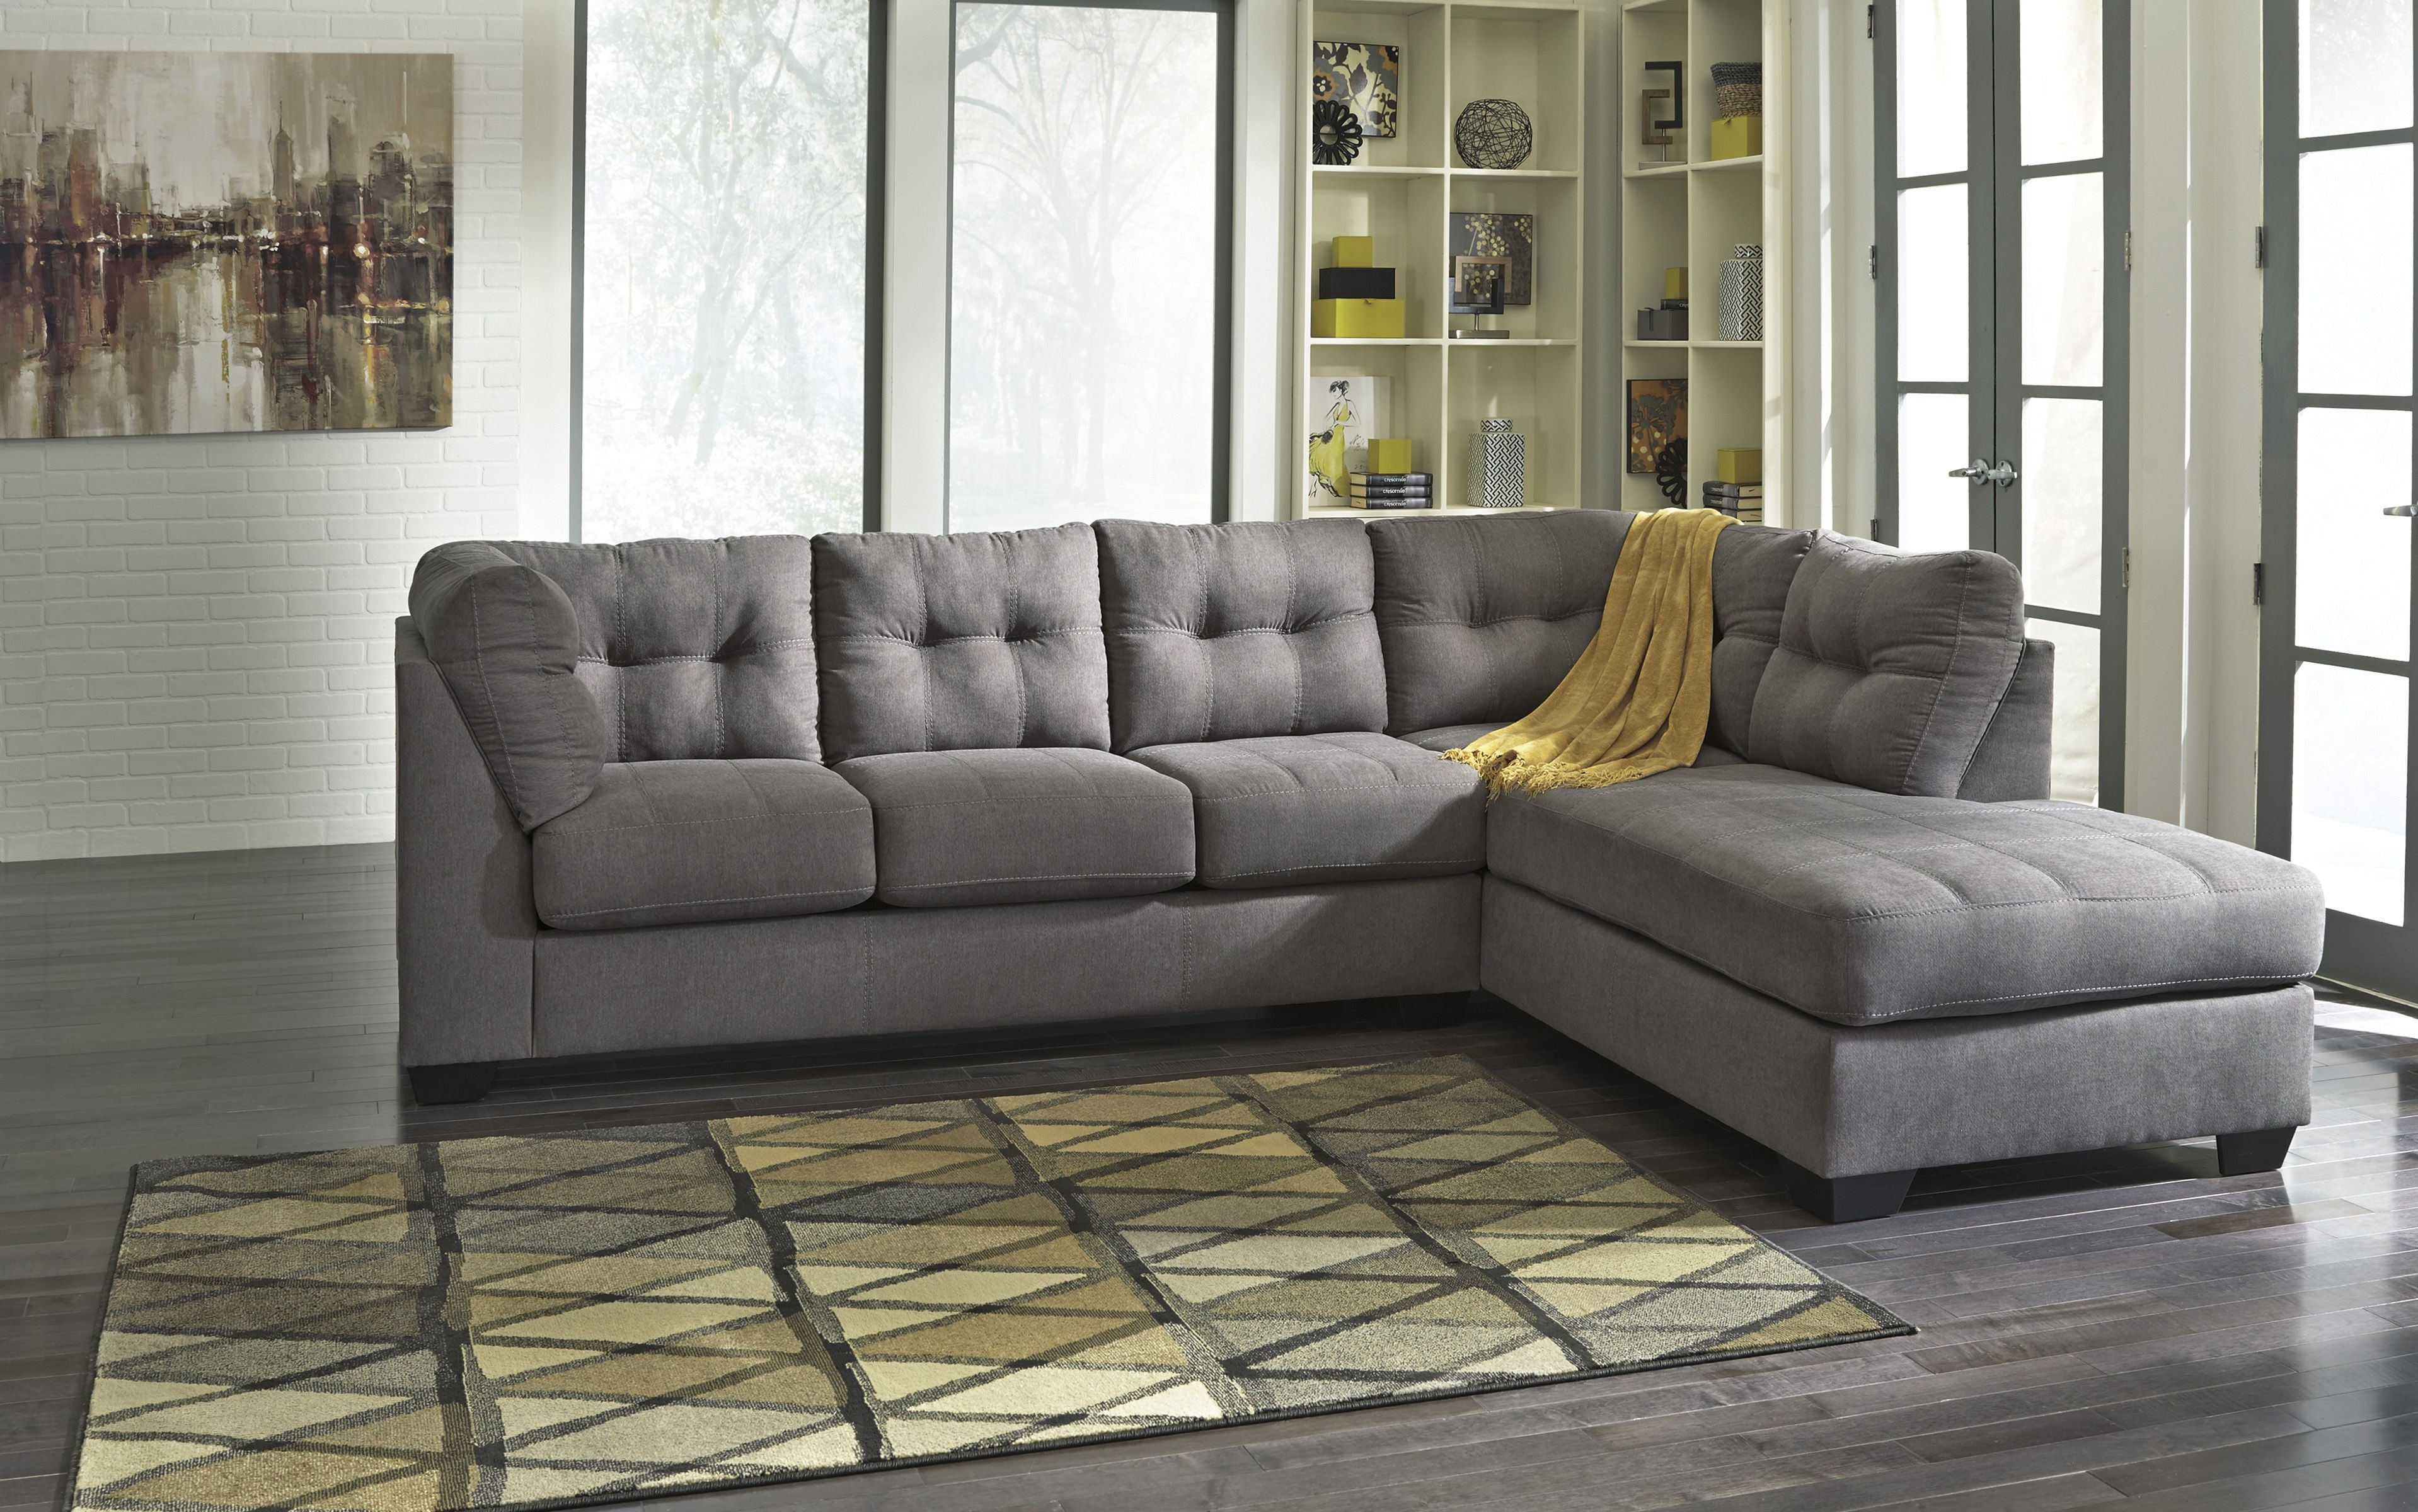 Ashley Furniture Maier Charcoal Raf Chaise Sectional | The Classy Home In Lucy Dark Grey 2 Piece Sleeper Sectionals With Raf Chaise (Image 2 of 25)